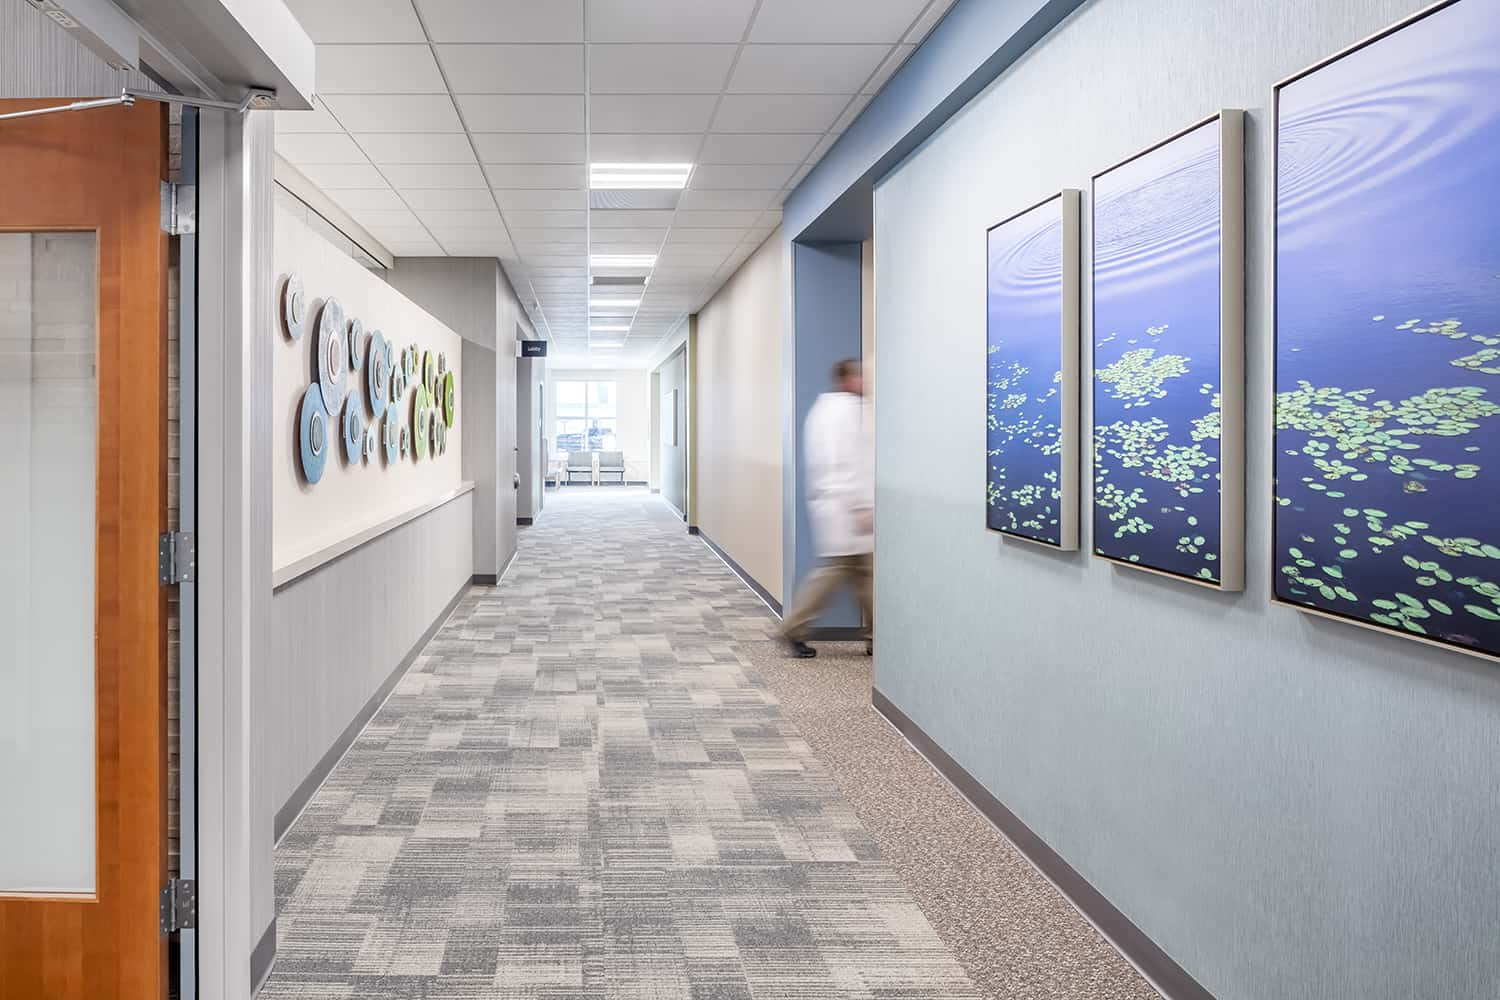 A doctor utilizes an interior corridor with nature-inspired artwork.